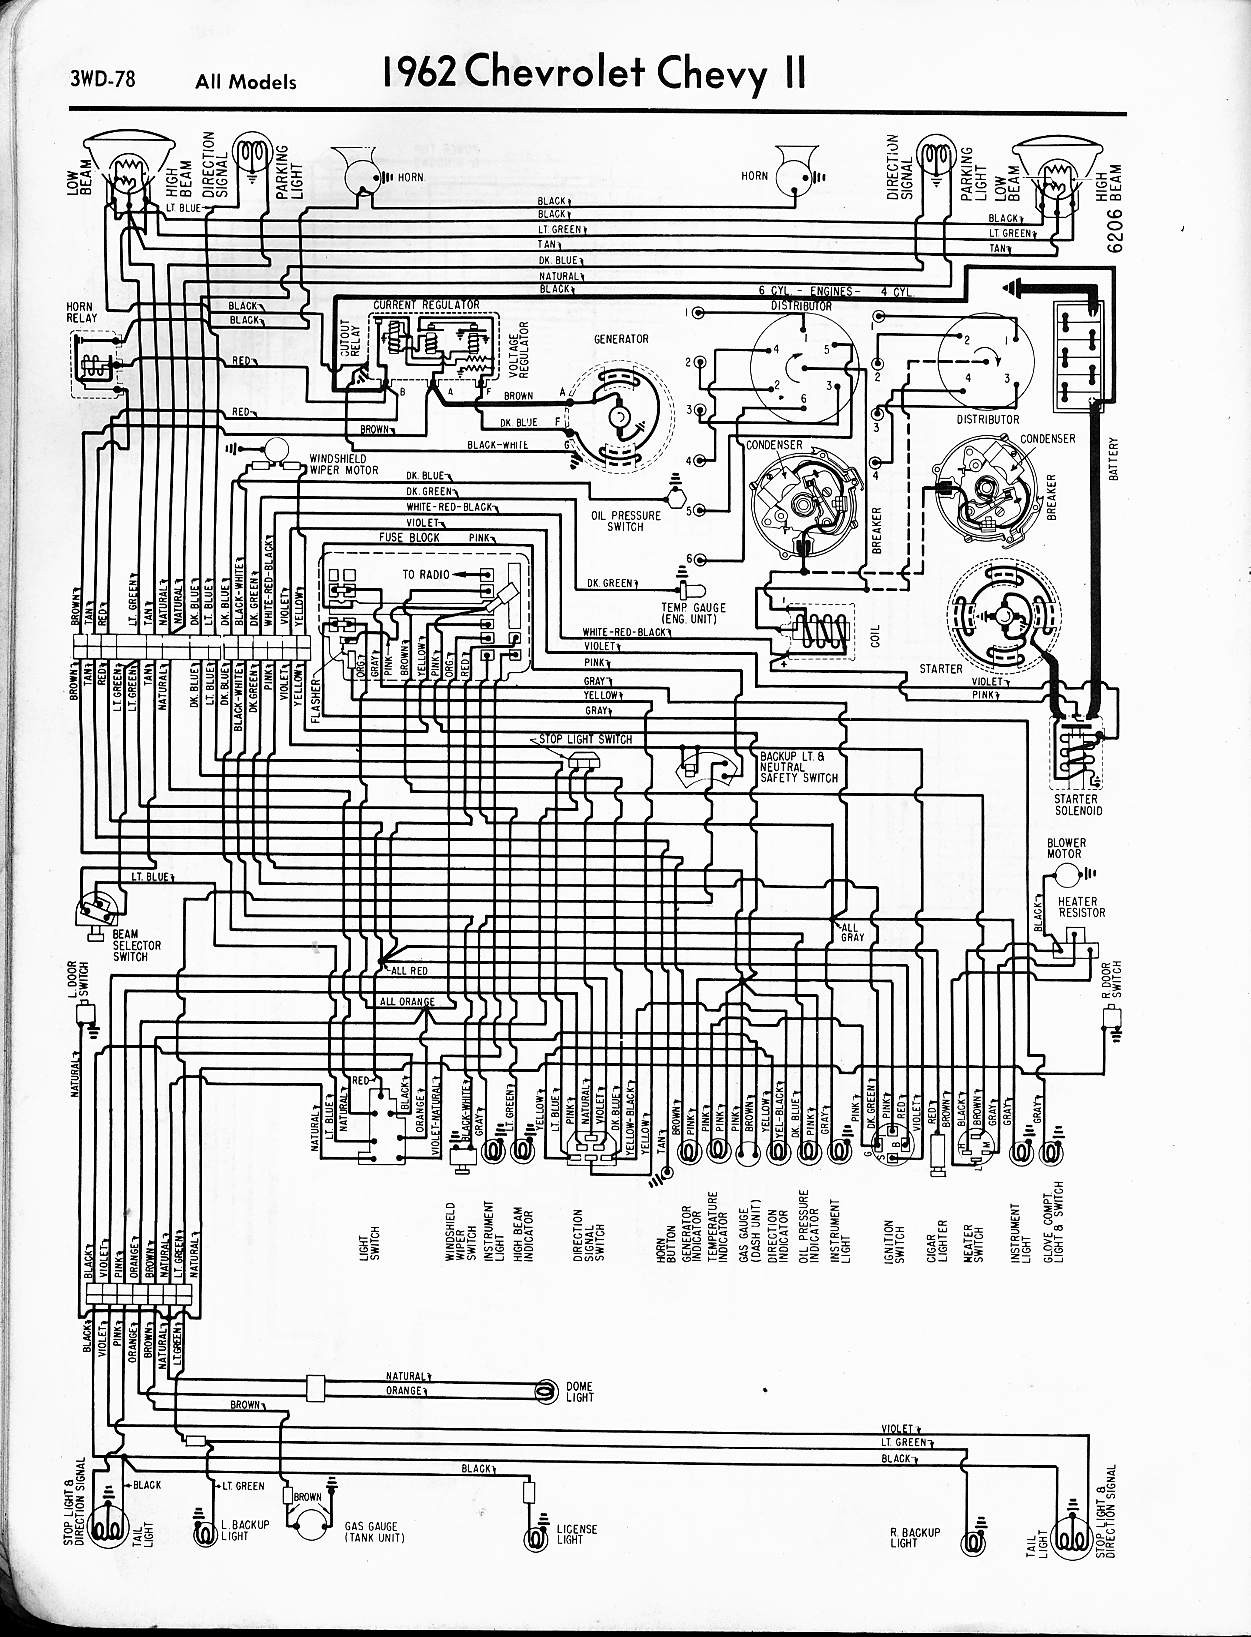 2005 Impala Engine Diagram 57 65 Chevy Wiring Diagrams